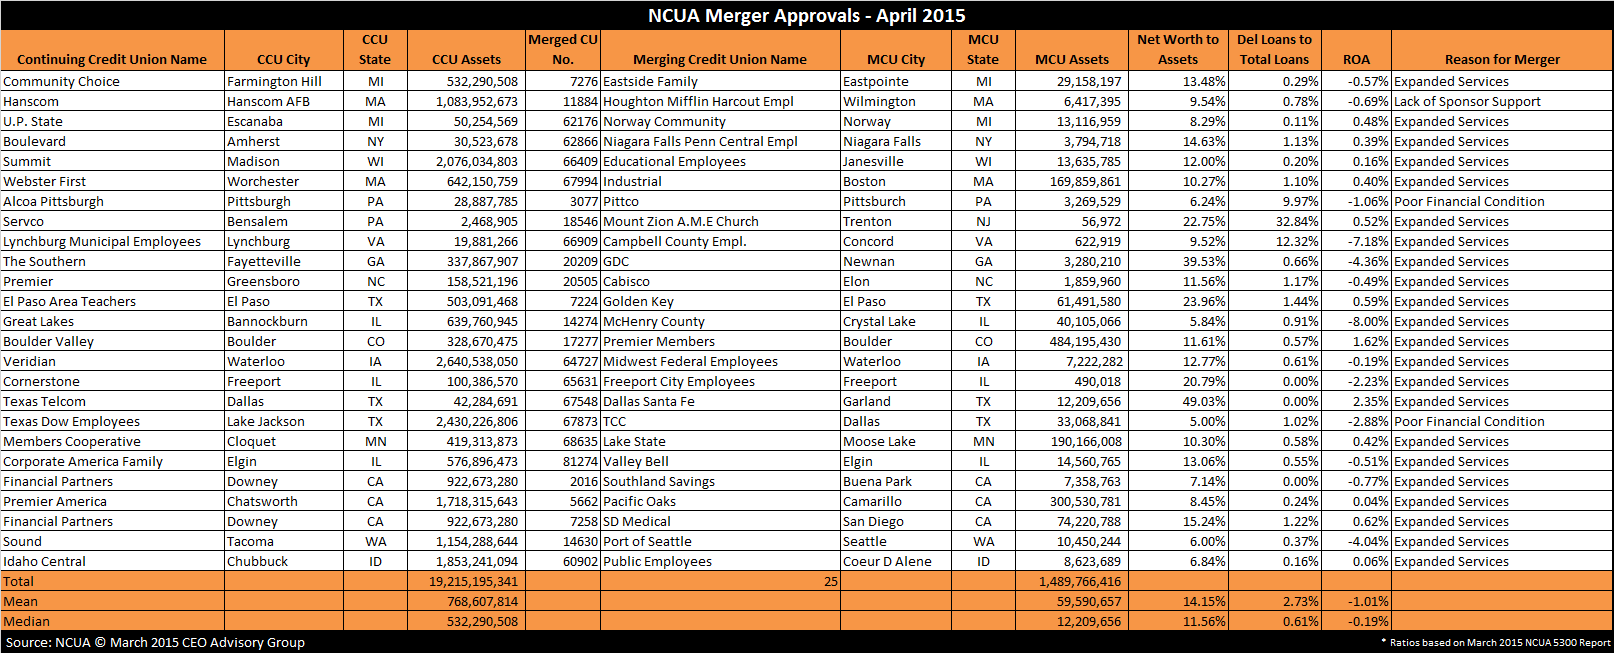 NCUA Approved credit union mergers April 2015